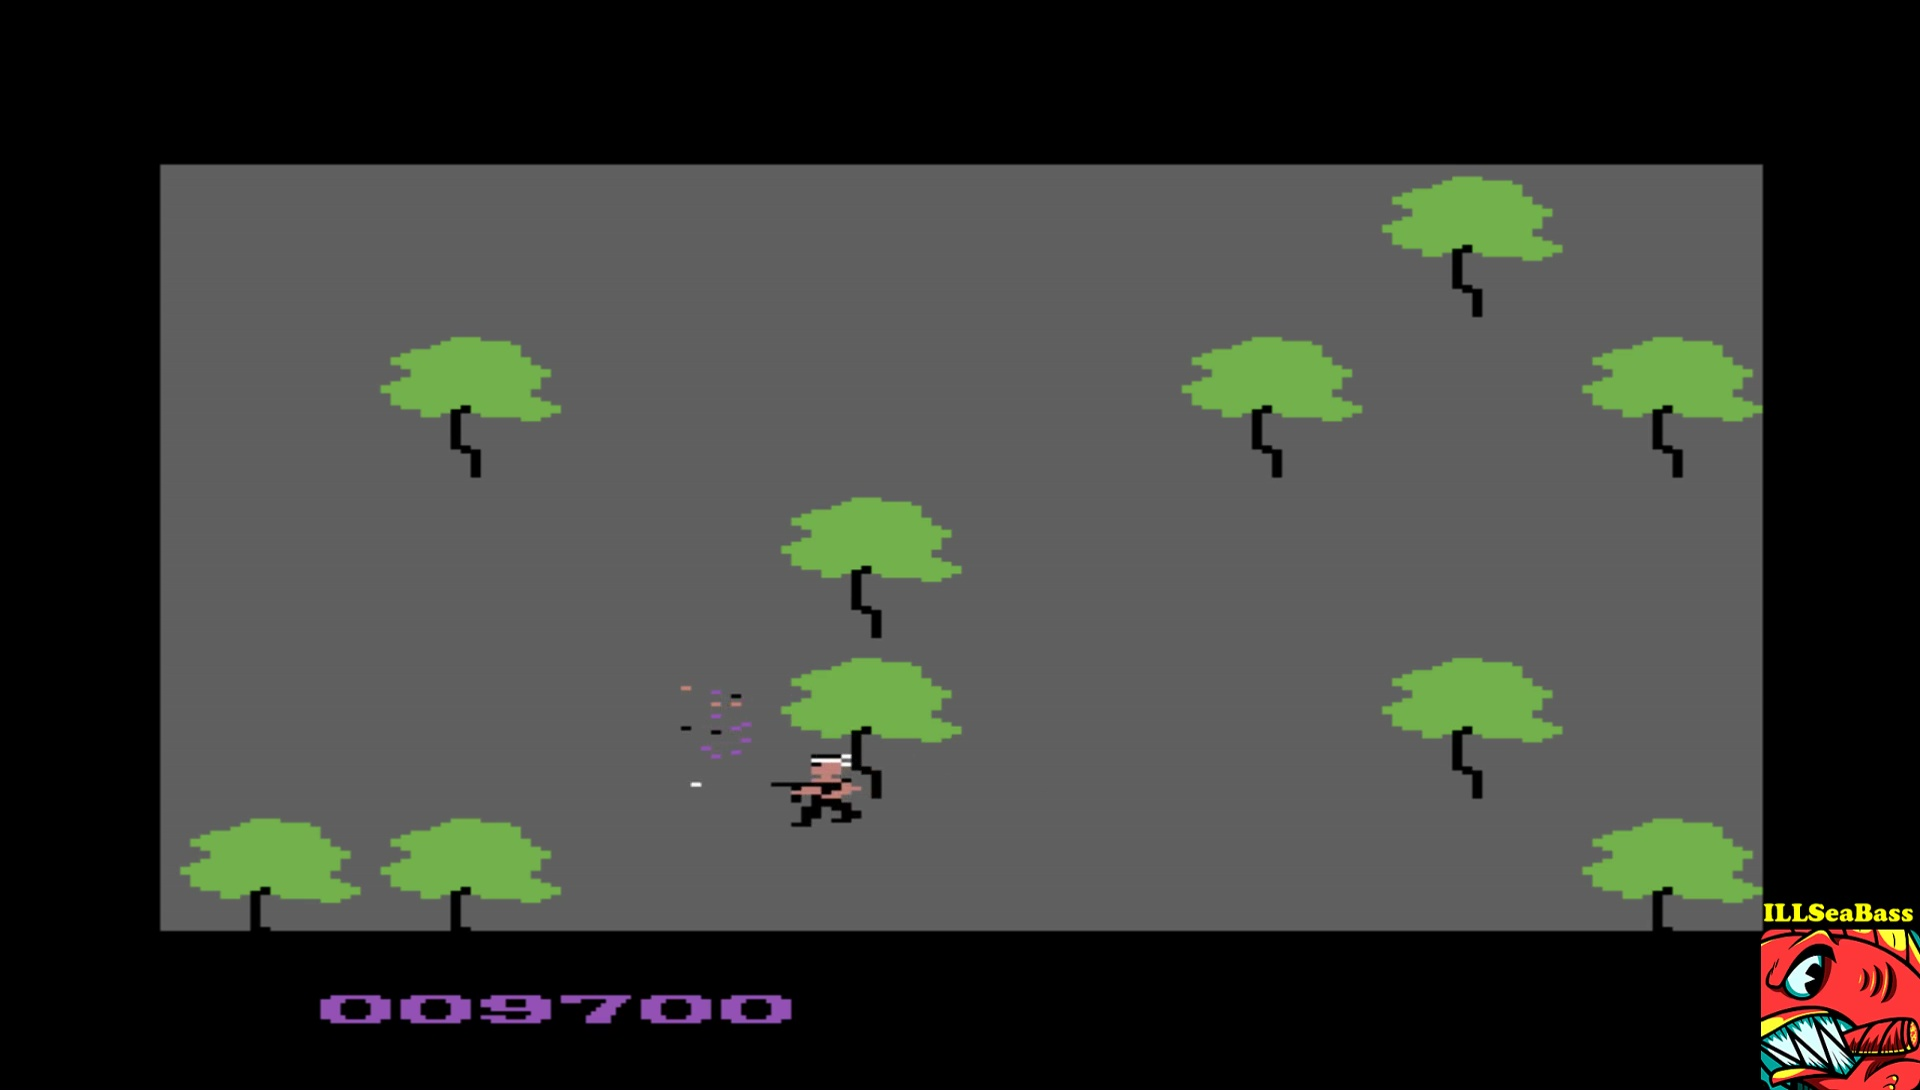 ILLSeaBass: Samurai Hunter (Commodore 64 Emulated) 9,700 points on 2017-06-06 00:00:18